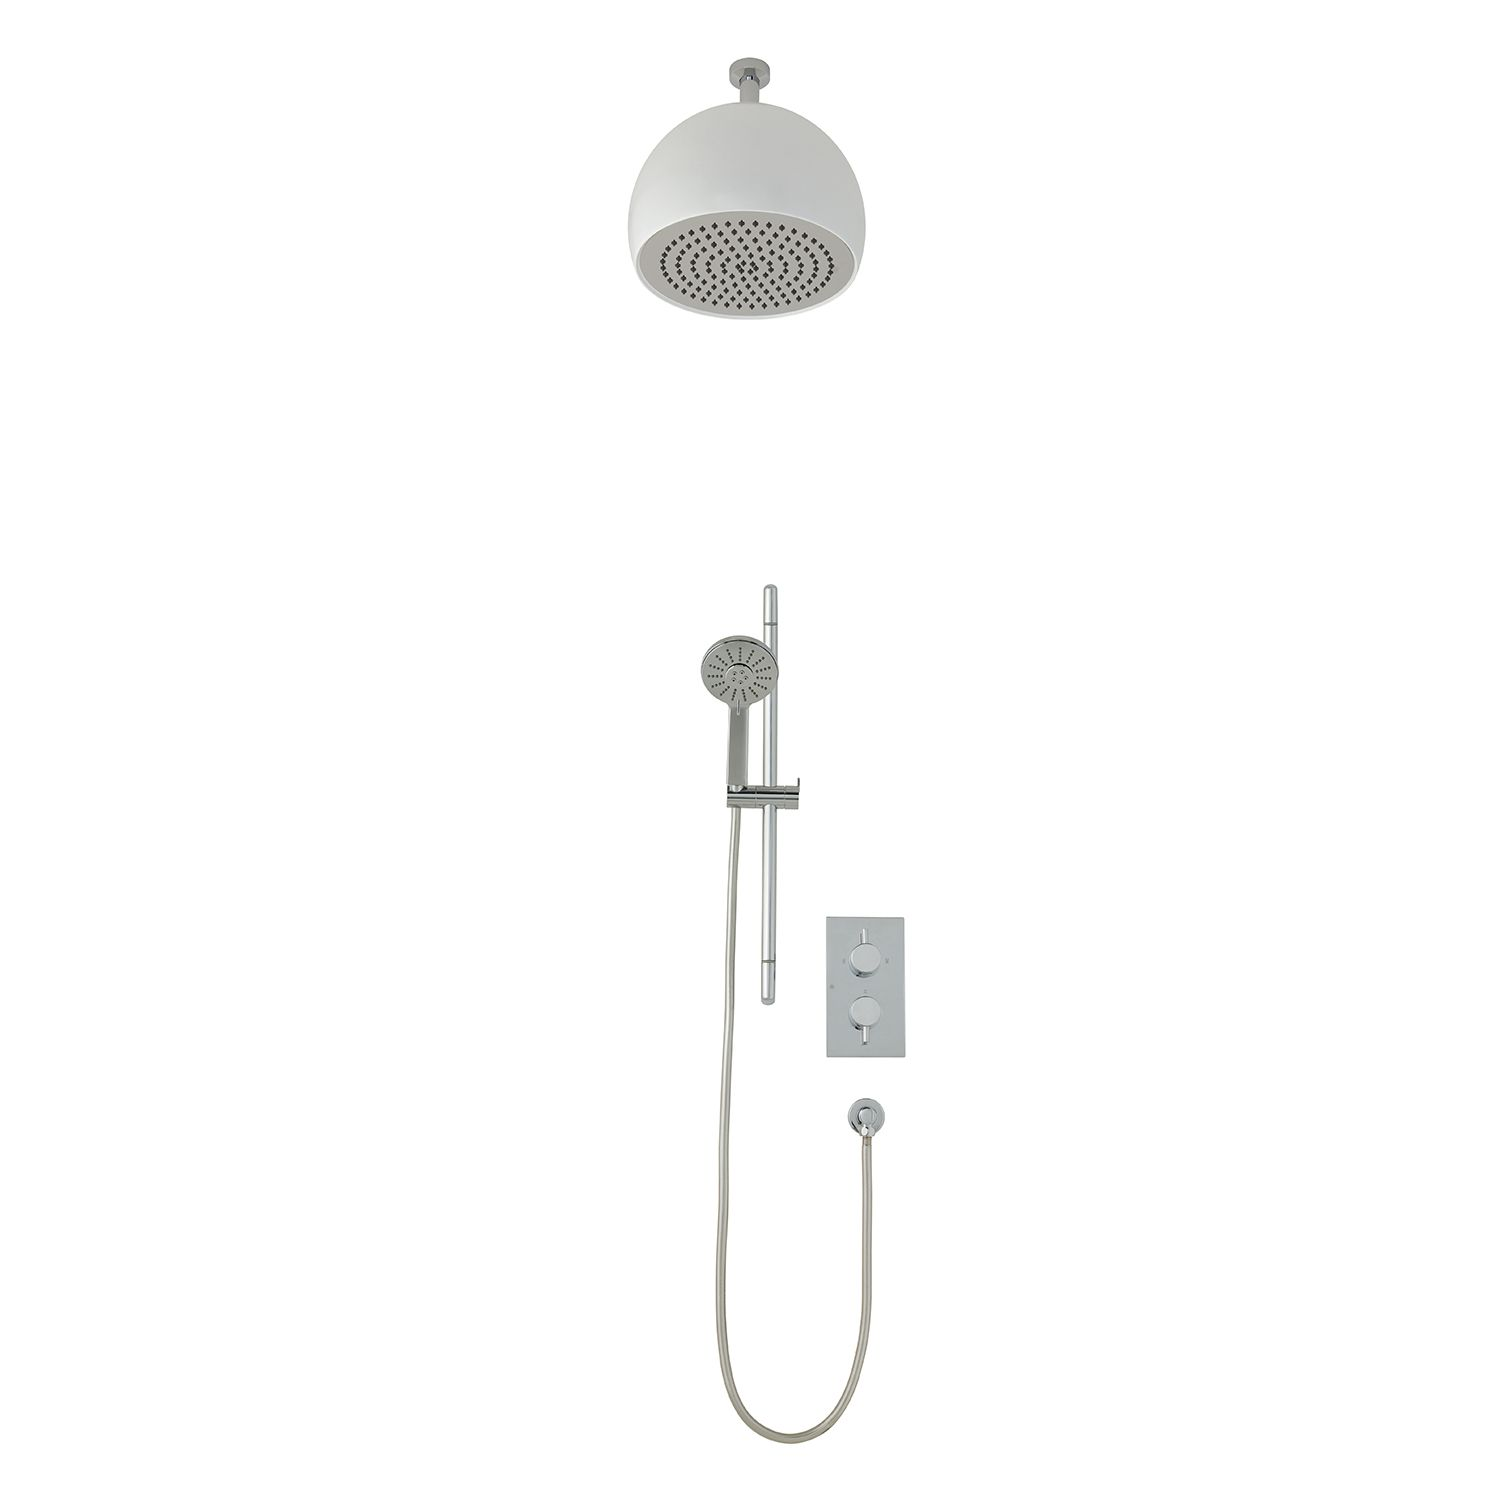 Shower Valves | REEF dual function shower system with overhead drencher